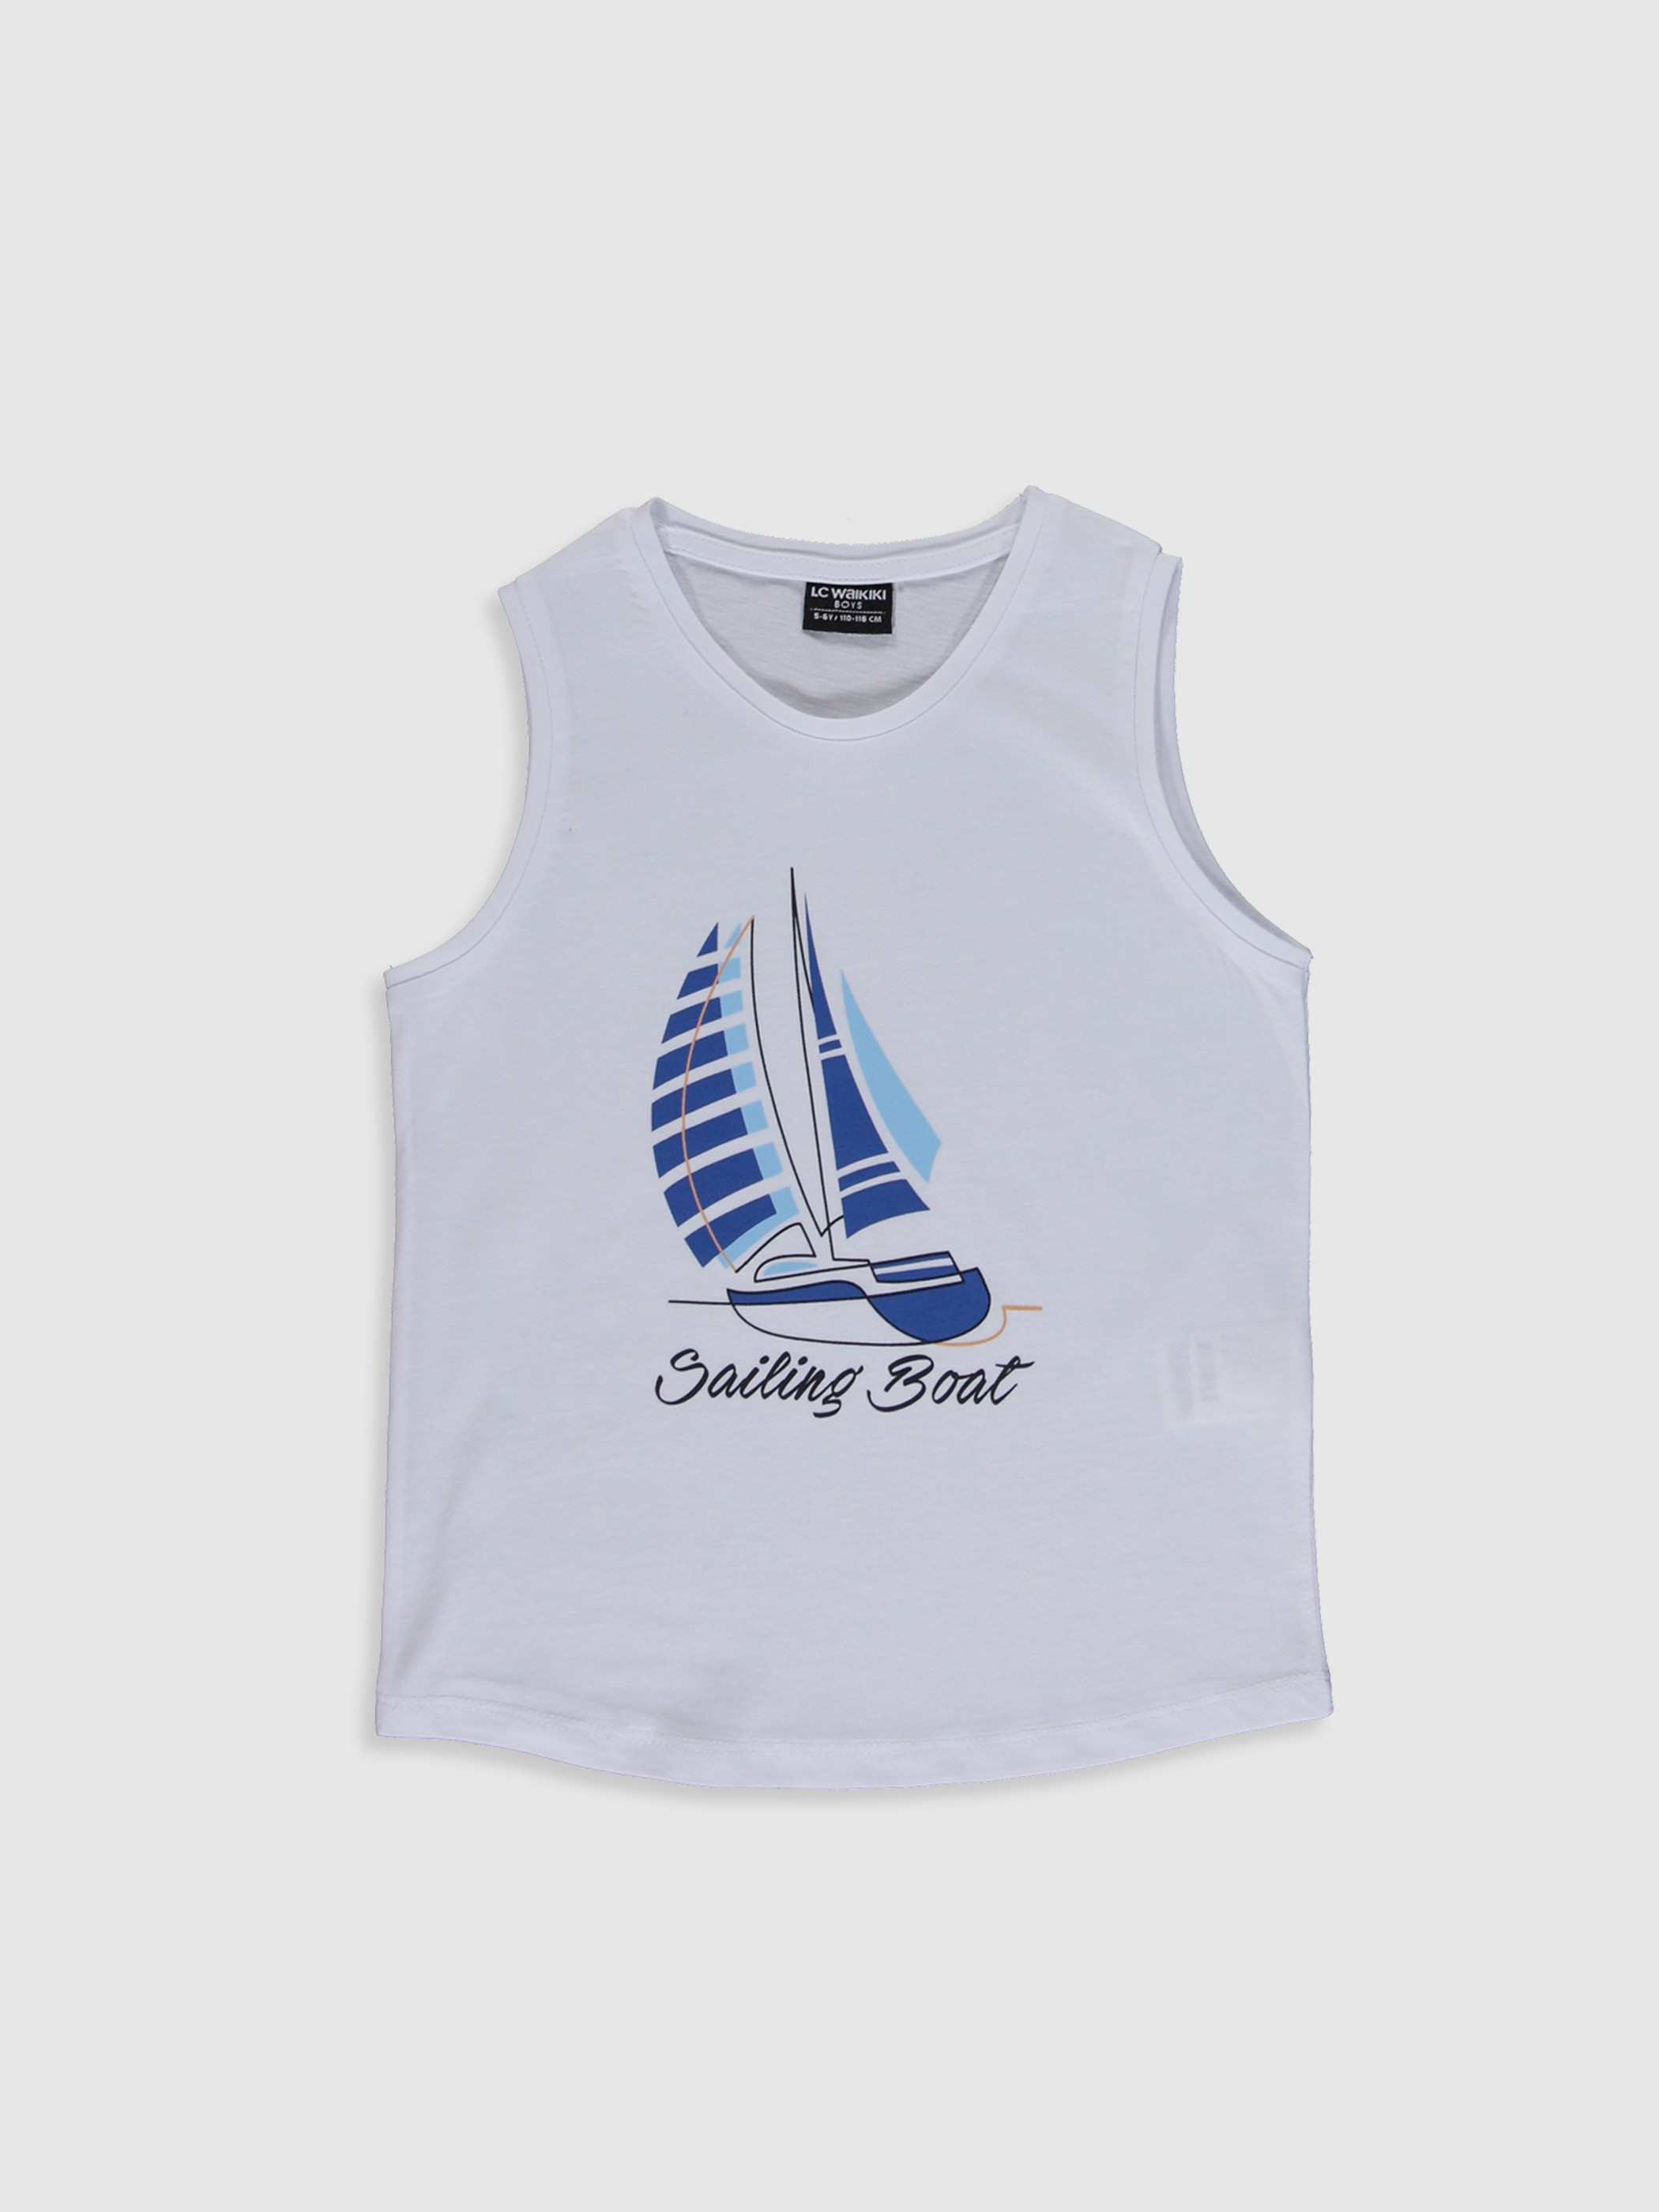 WHITE - Boy's Printed Cotton Tank Top Family Matching - 0SE817Z4